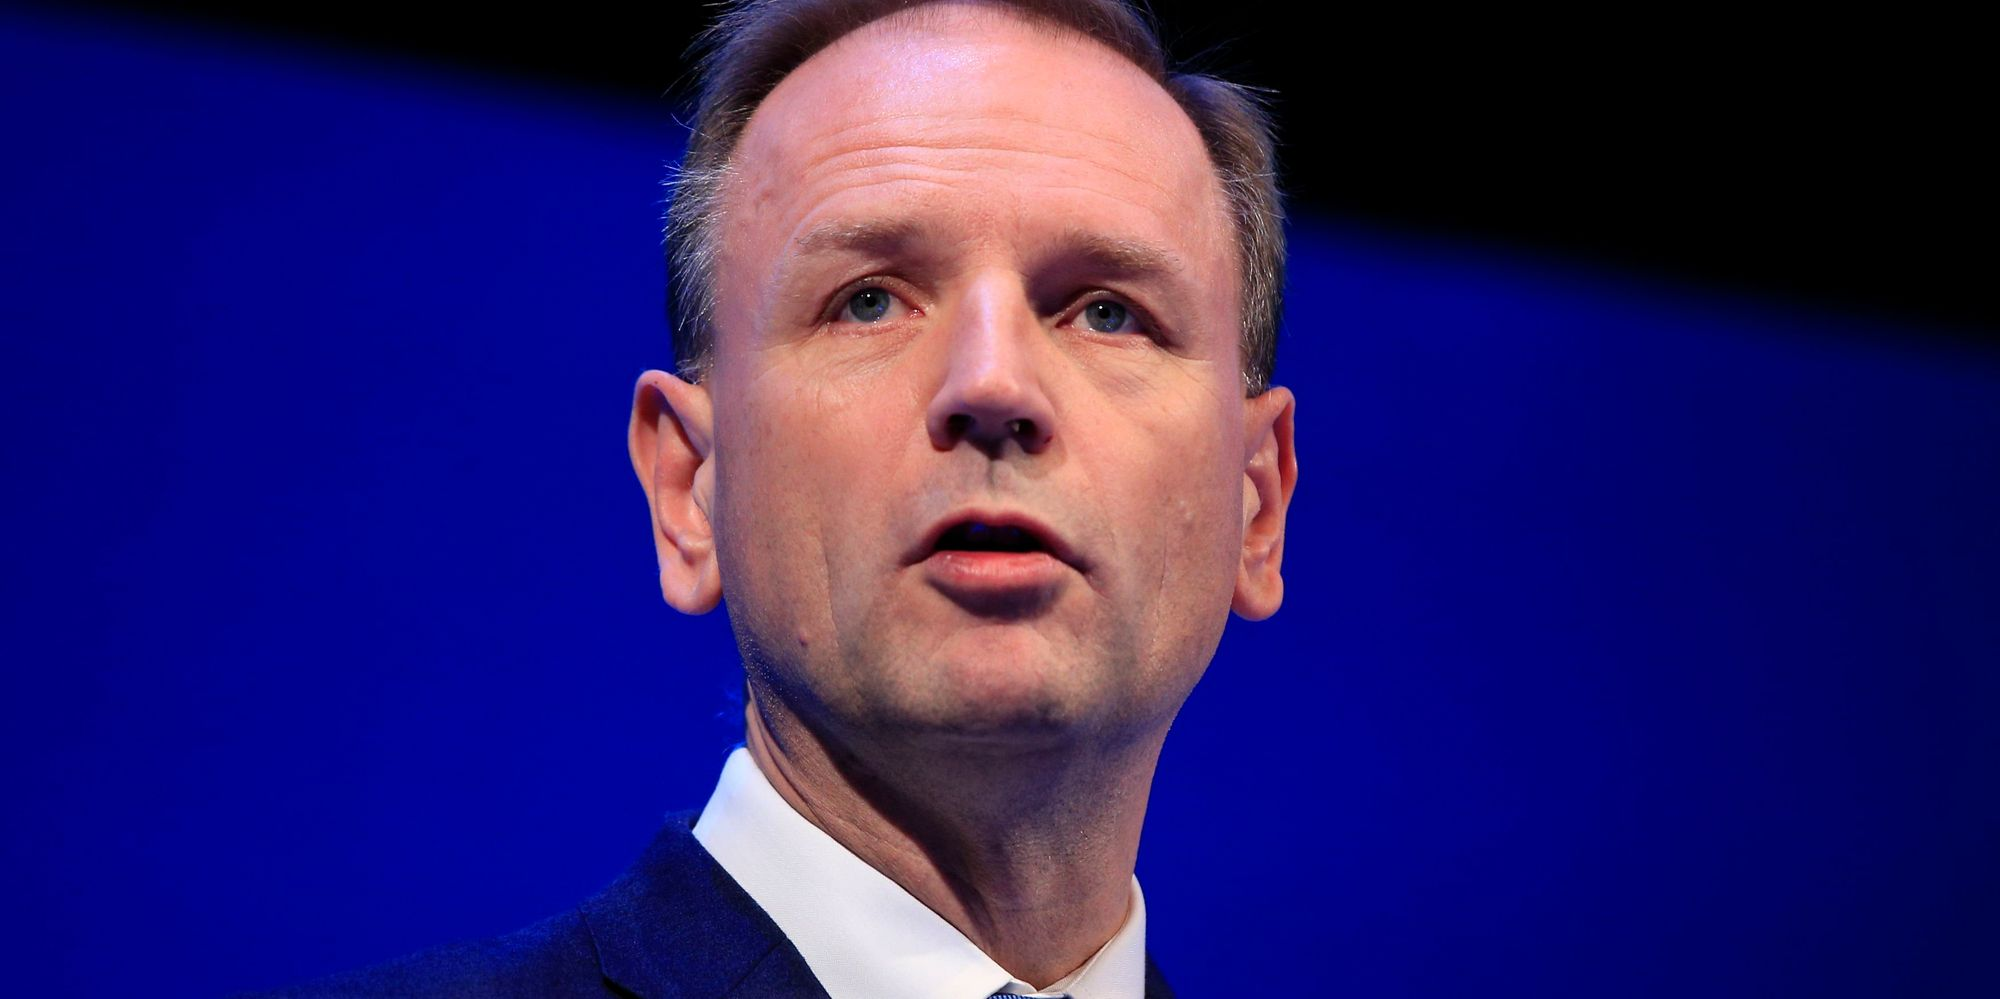 NHS Chief Simon Stevens Destroys Theresa May's Claim That Health Service Has Enough Money